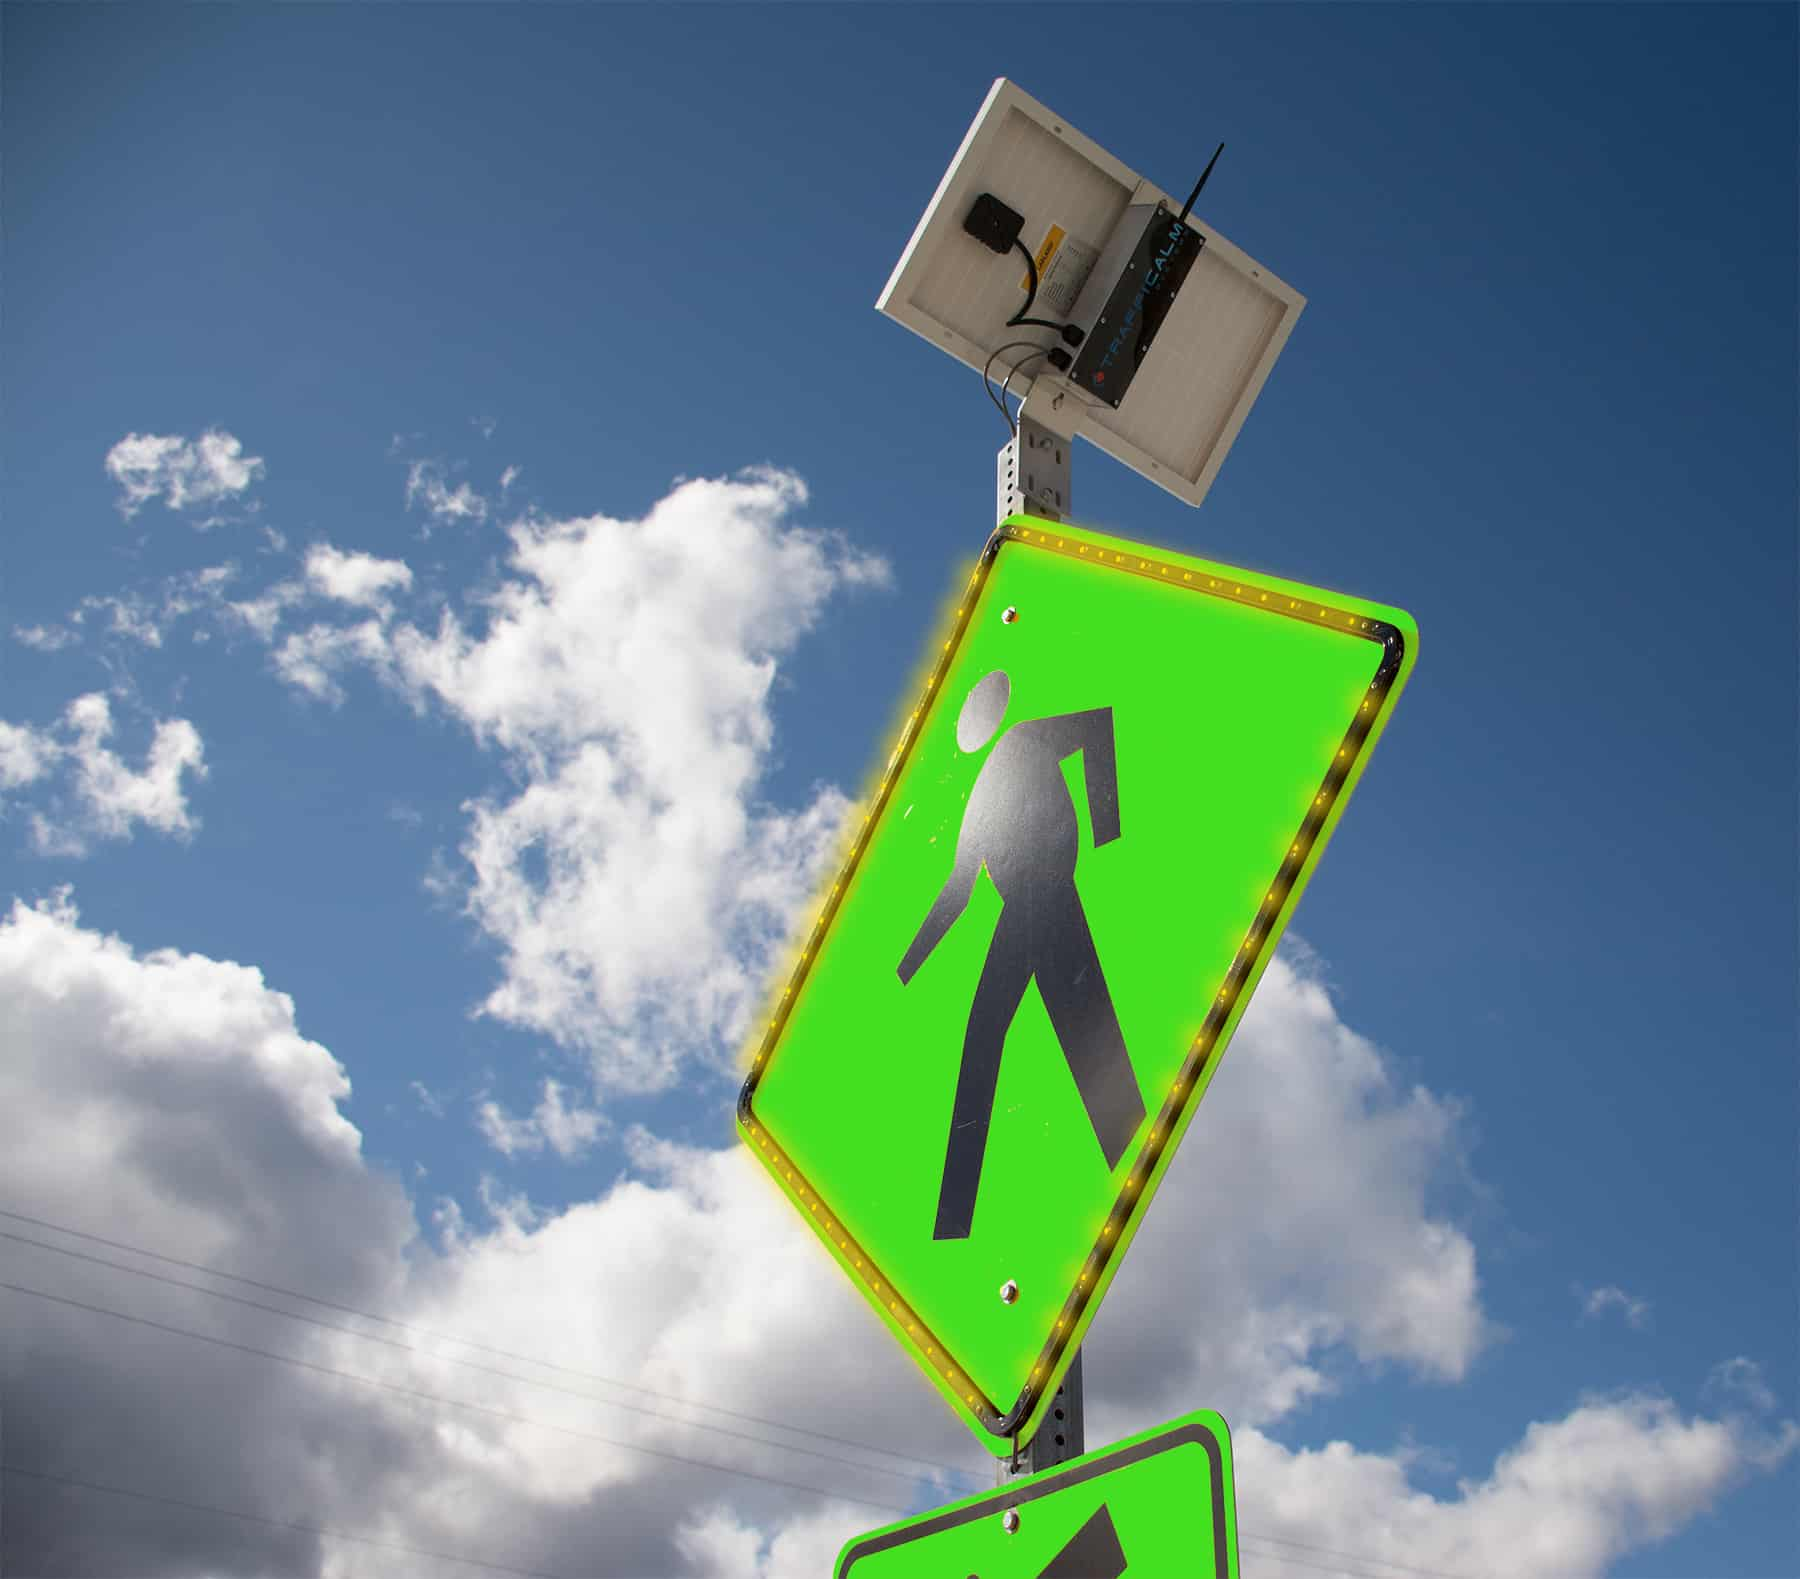 Safe Schools Promotional Trafficalm Radar Speed Signs And Traffic Ring Around Led Flasher Back To System